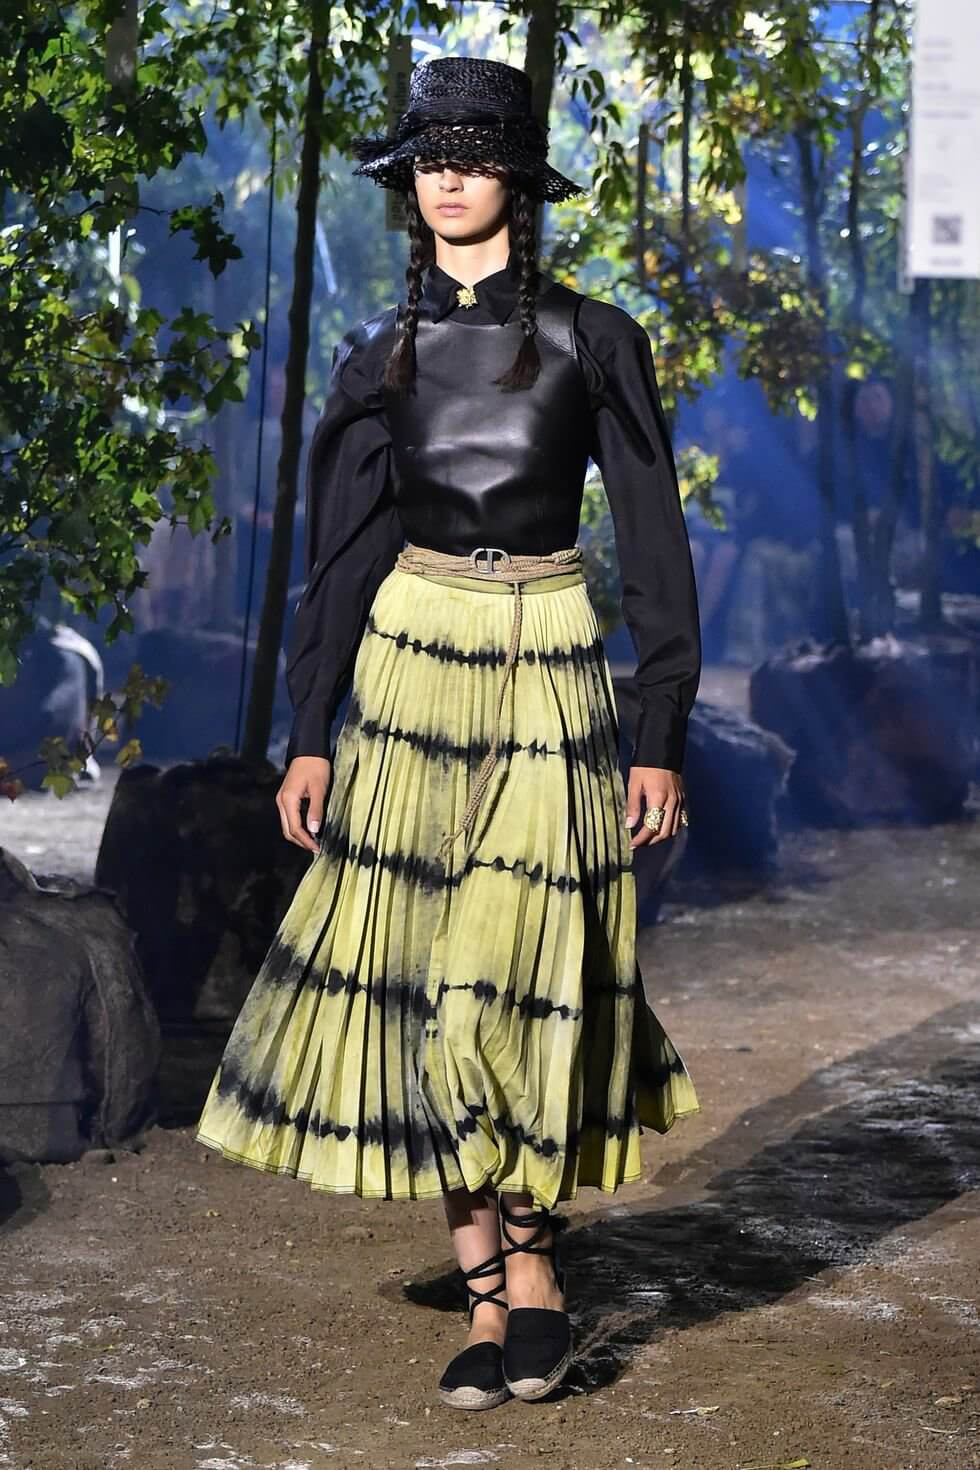 africa penalver walks the runway during the christian dior news photo 15875843055022441639643267798